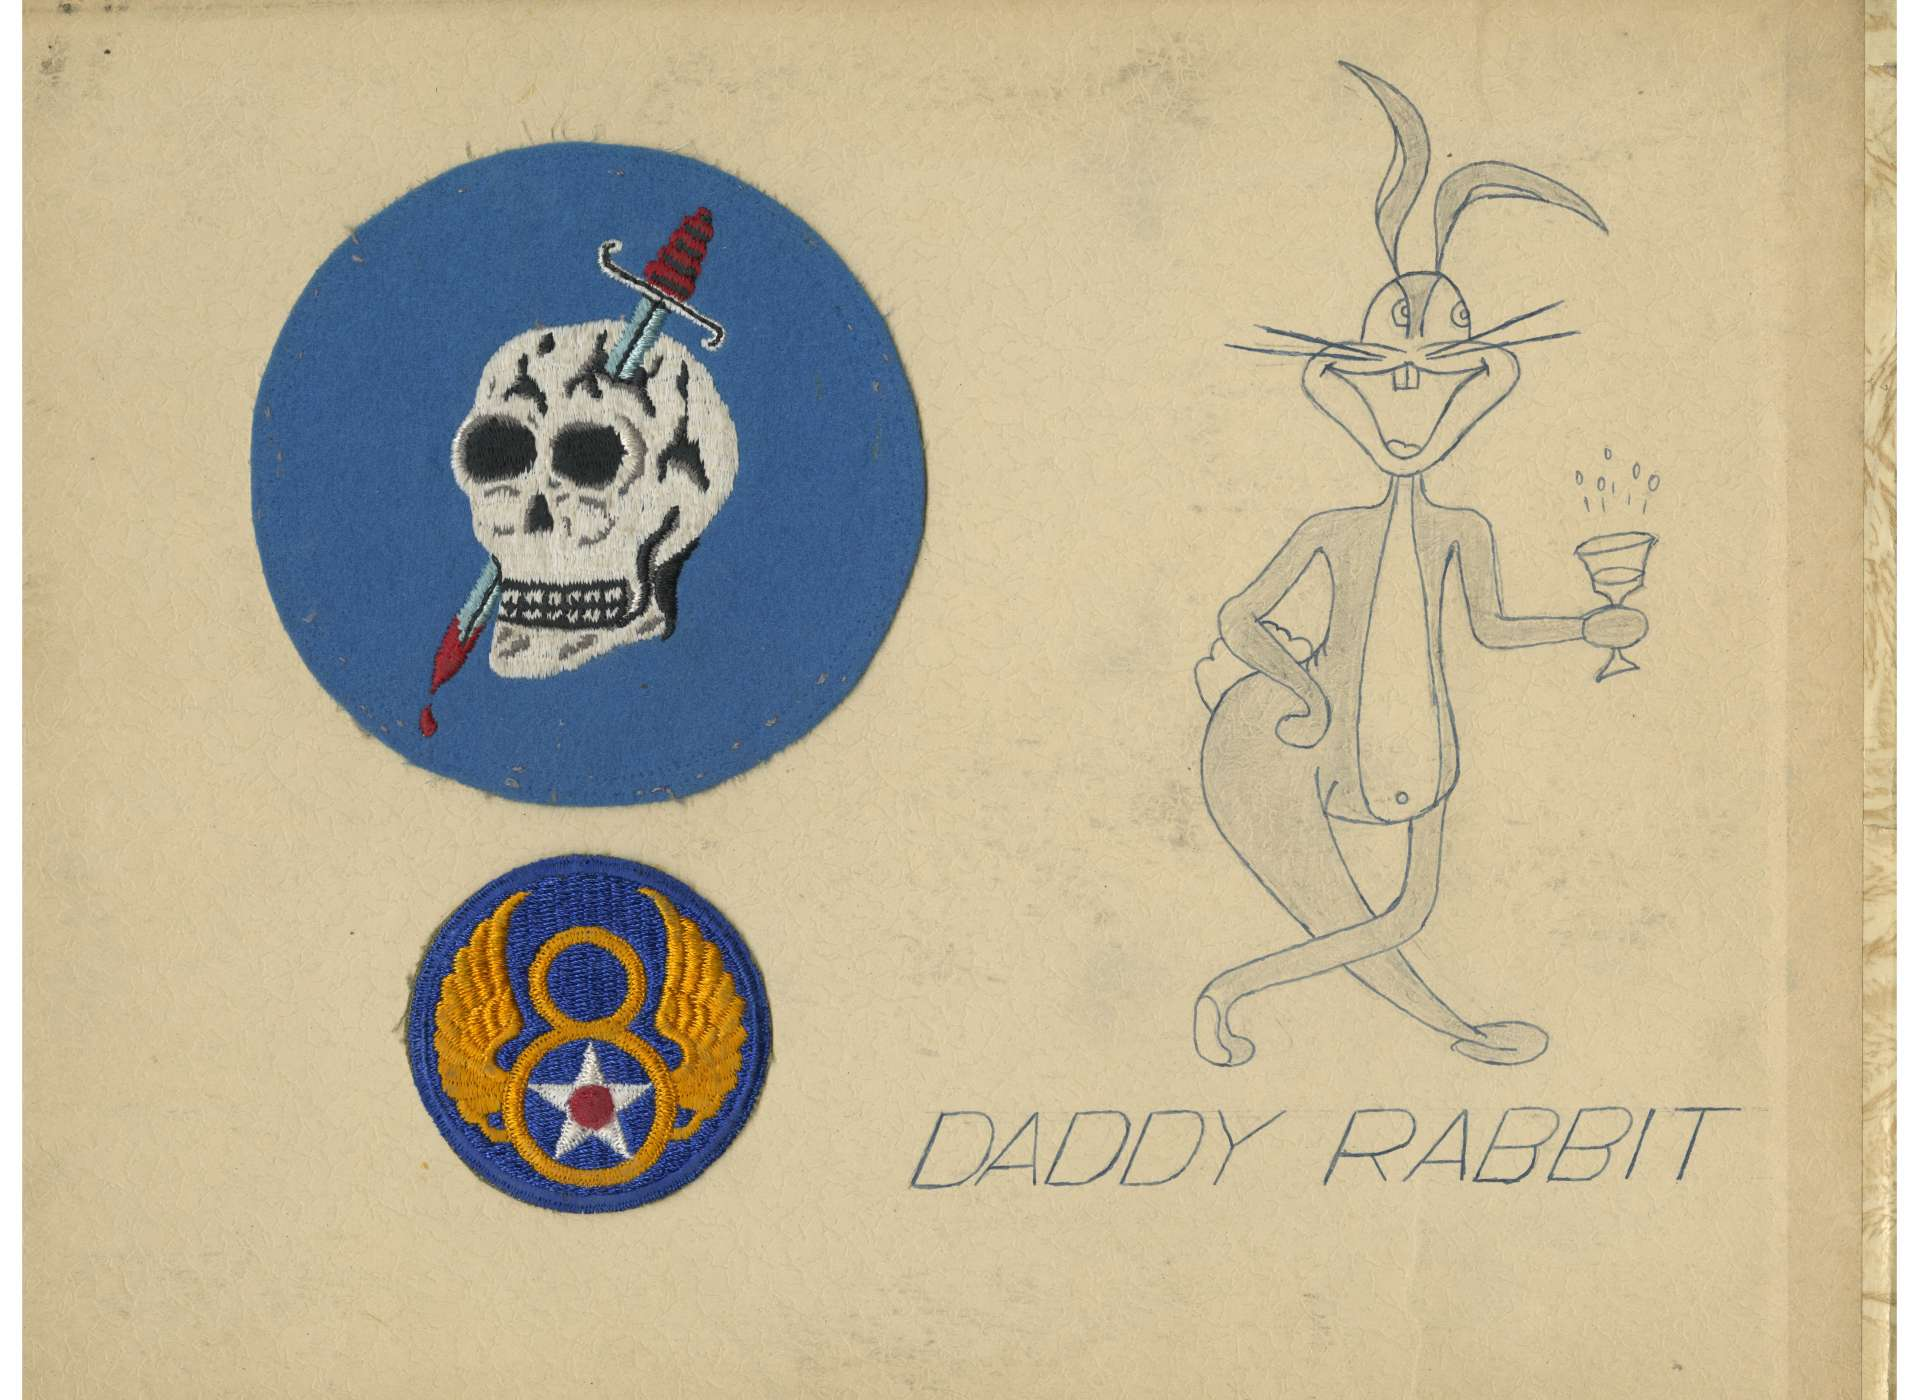 A page from Captain Charles K. Peters's scrapbook. Peters's 363rd Fighter Squadron and 8th Air Force patch are pasted inside, along with a sketch of Daddy Rabbit's nose art.